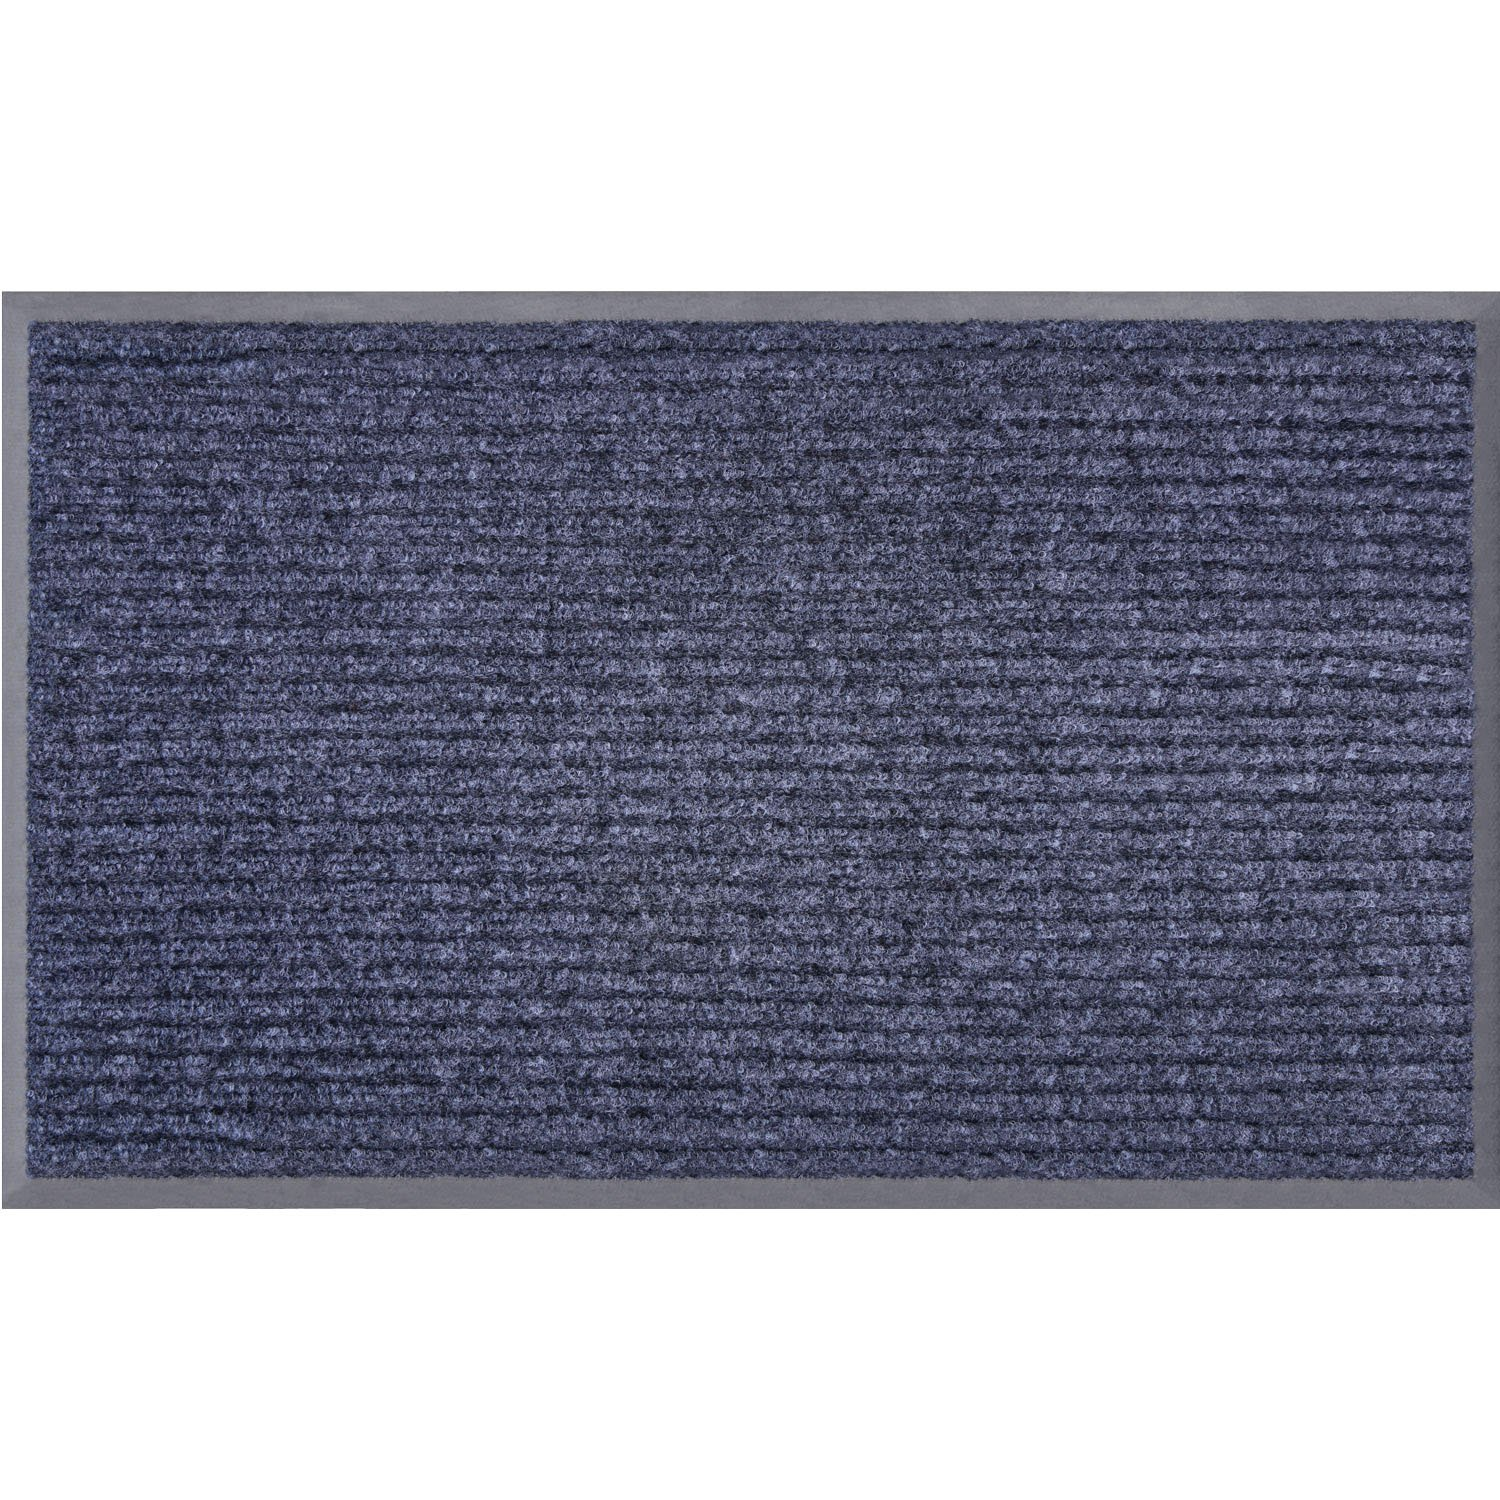 mat rugs large runners office mats door thin decoration house doors online foot indoor runner hallways gorgeous welcome buy target for rug floor affordable doormat outdoor wide in